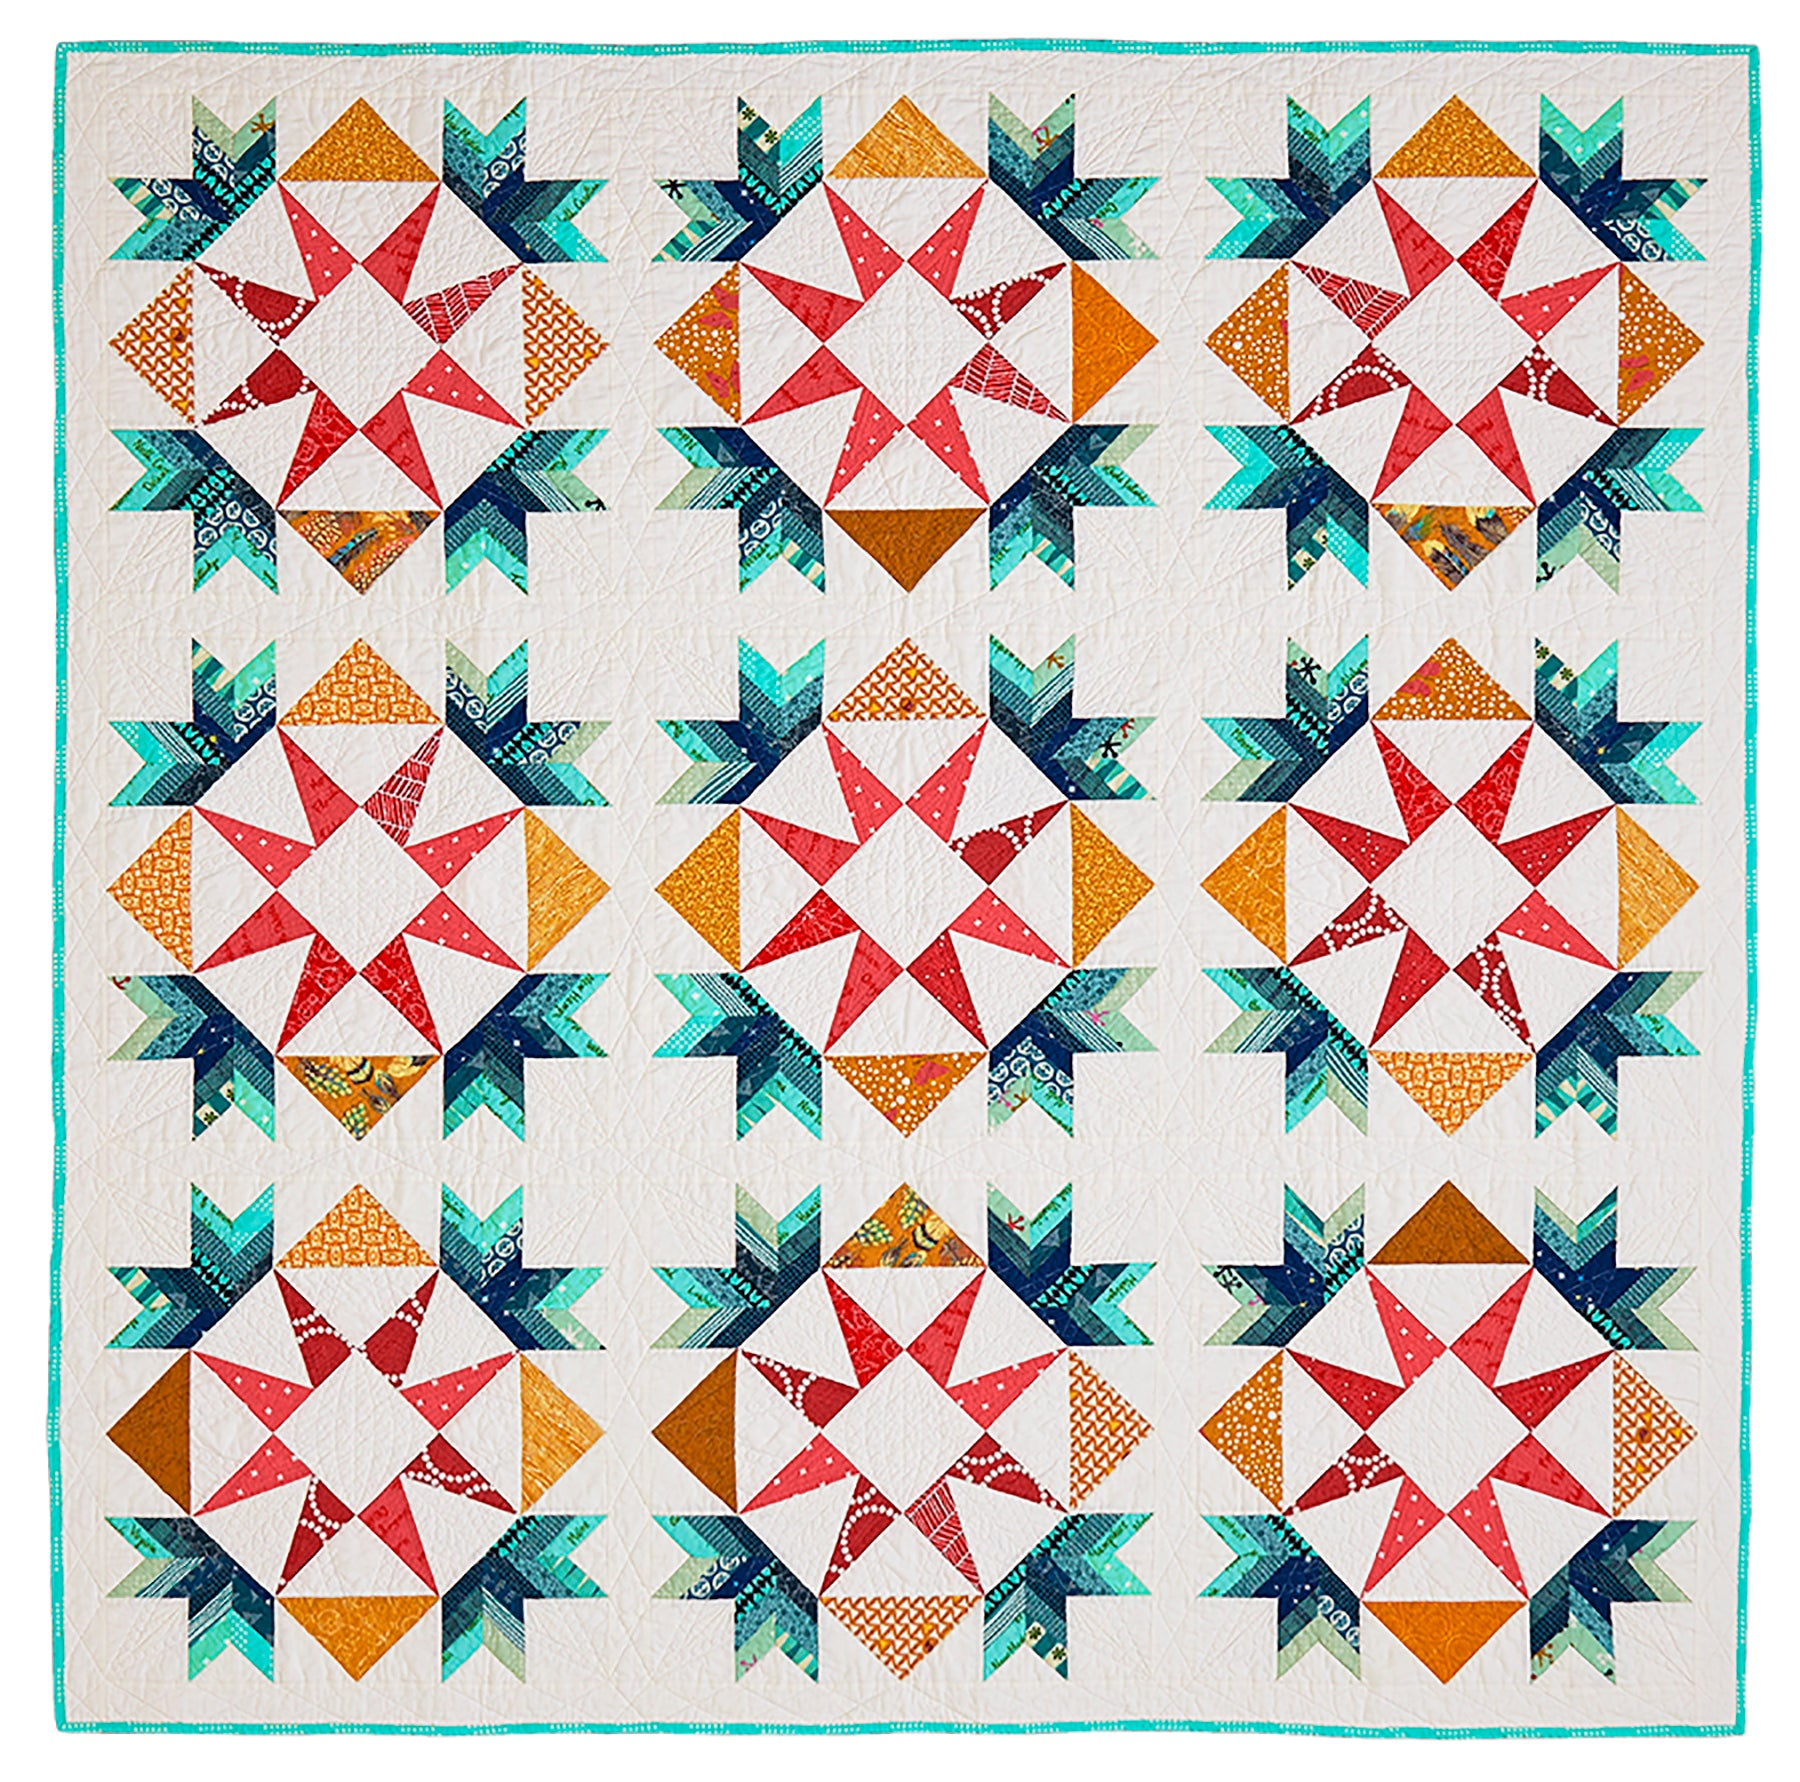 Star Bright Quilt by Rebecca Bryan